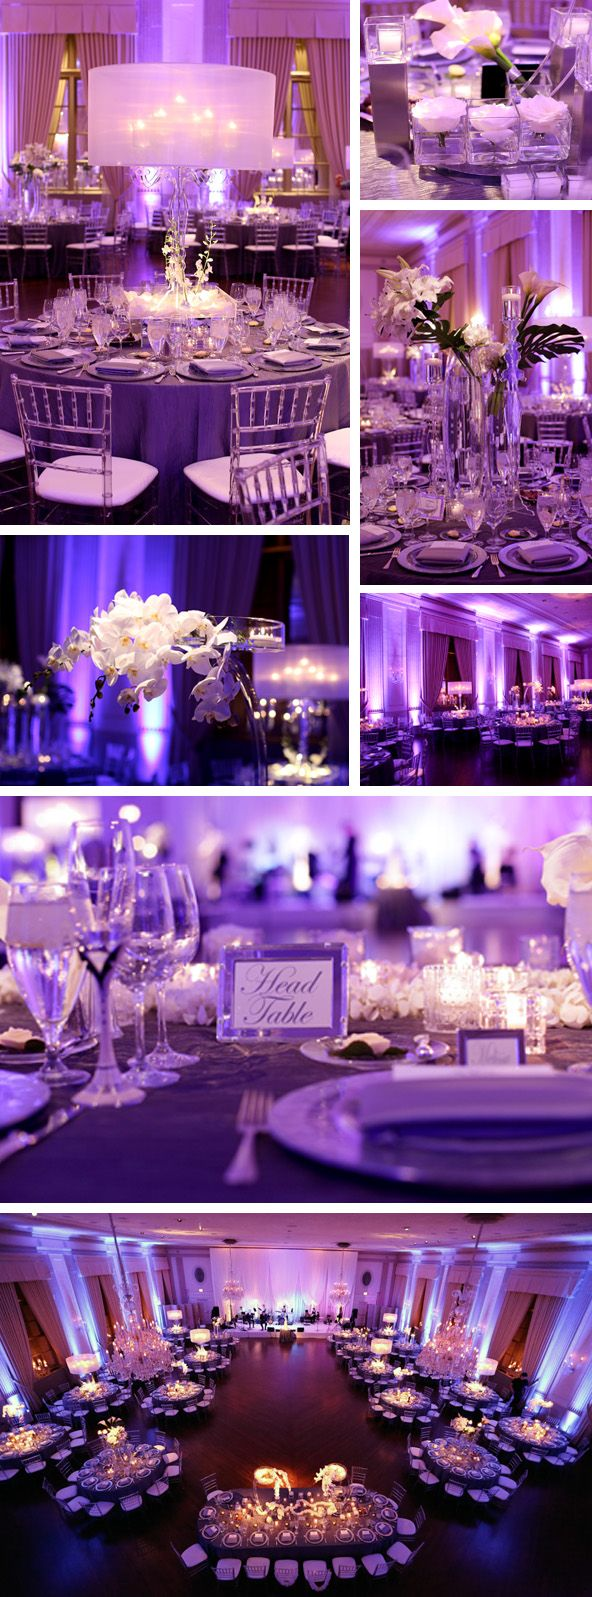 Chicago photographer Rachel Lindemann shares this sleek and sophisticated wedding held at The Standard Club with decor by Ronsley Special Events.